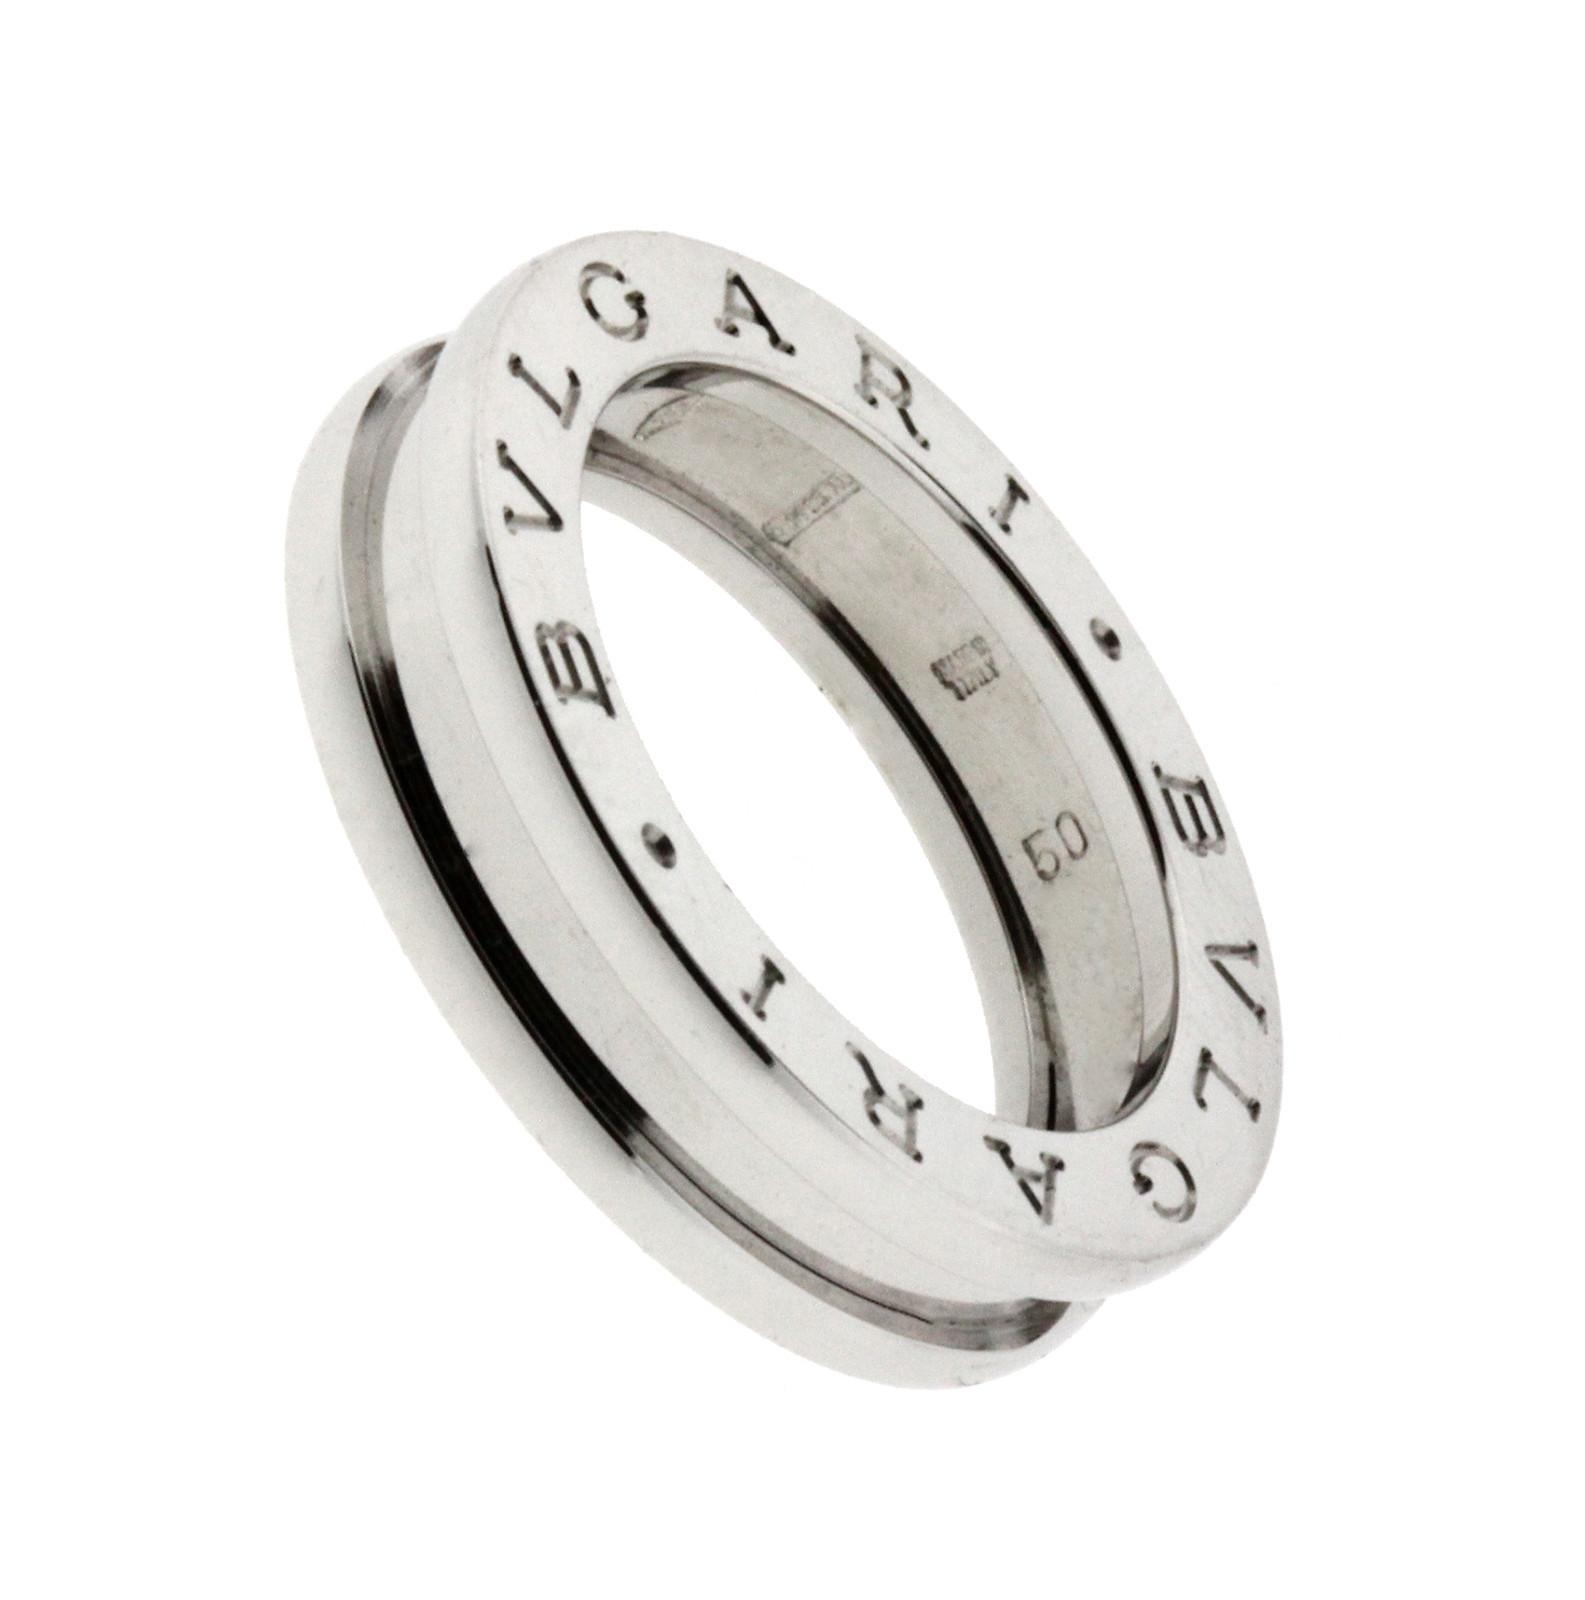 bvlgari bvlgari bzero1 band ring in 18k white gold ref ans852423 size 375